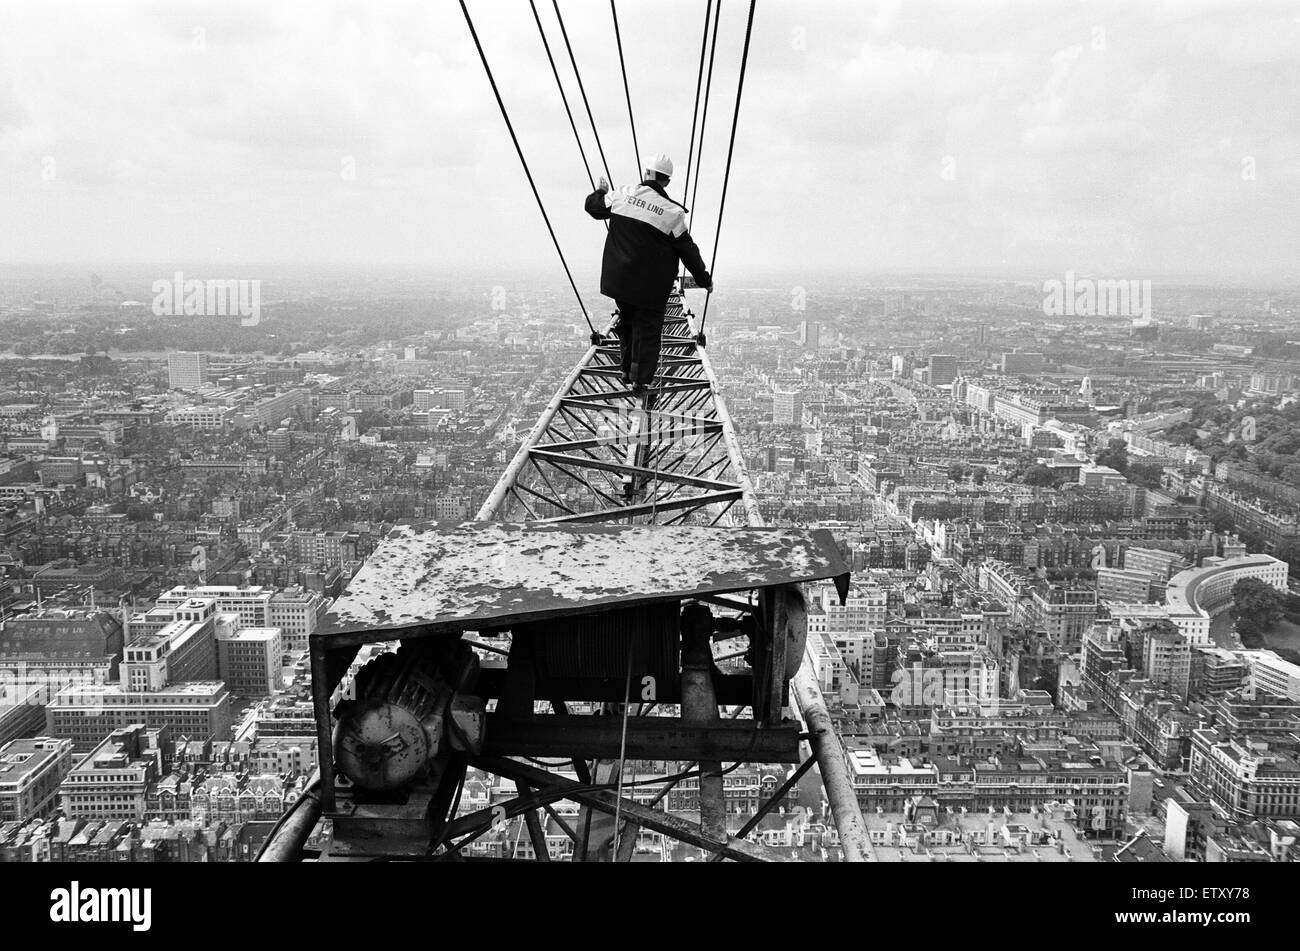 Construction of the GPO Tower, London. 15th July 1964. - Stock Image